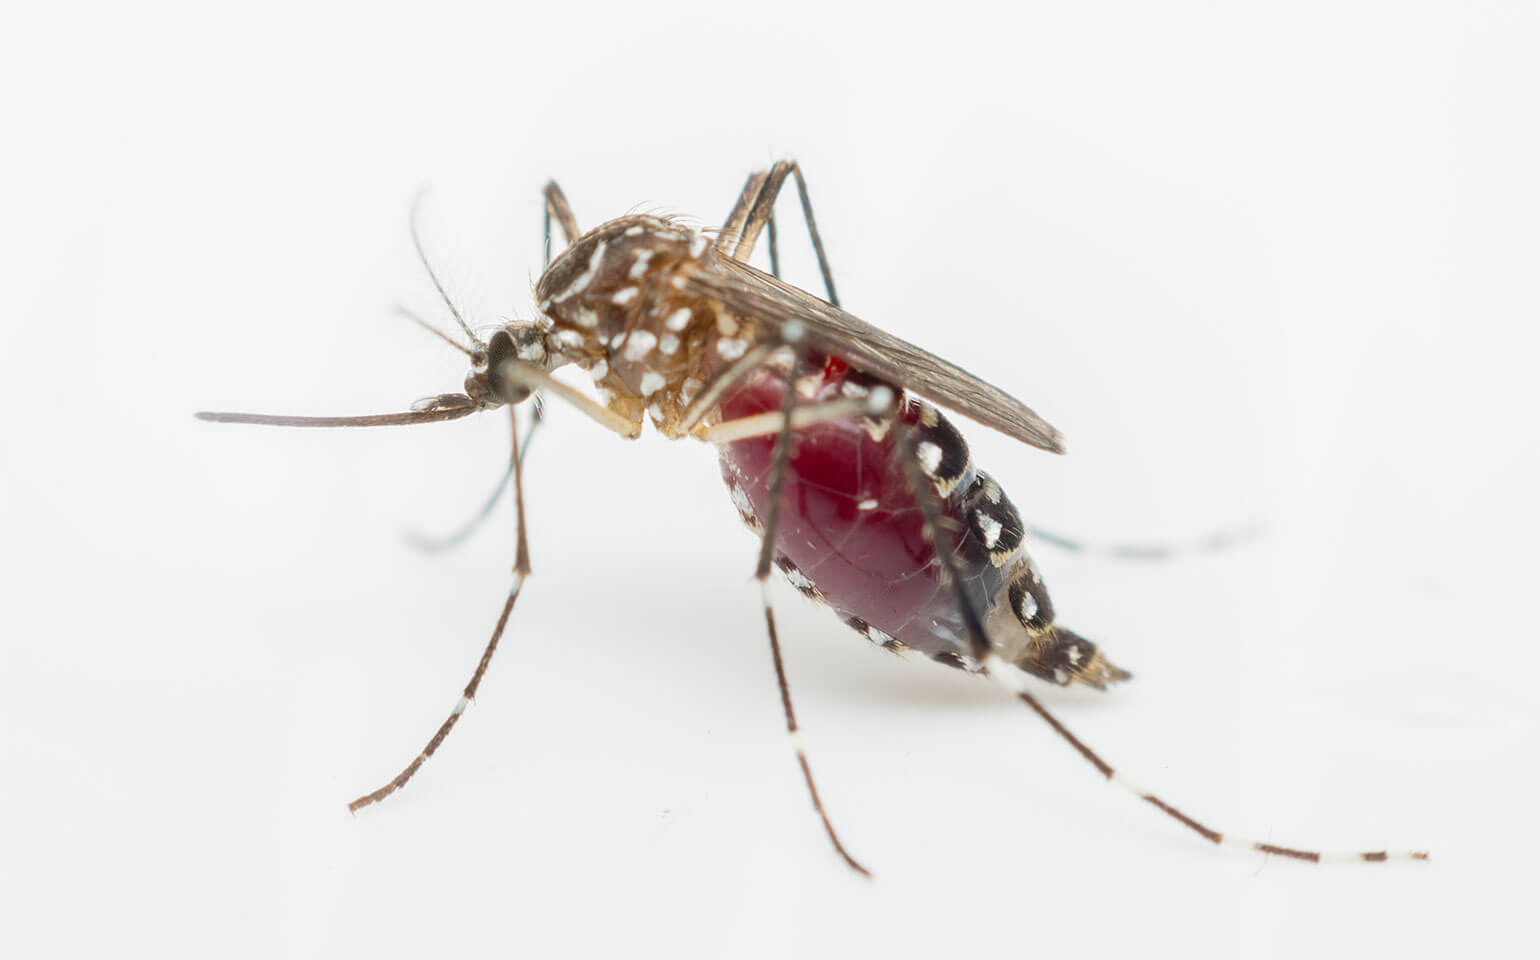 How can yellow fever be prevented?